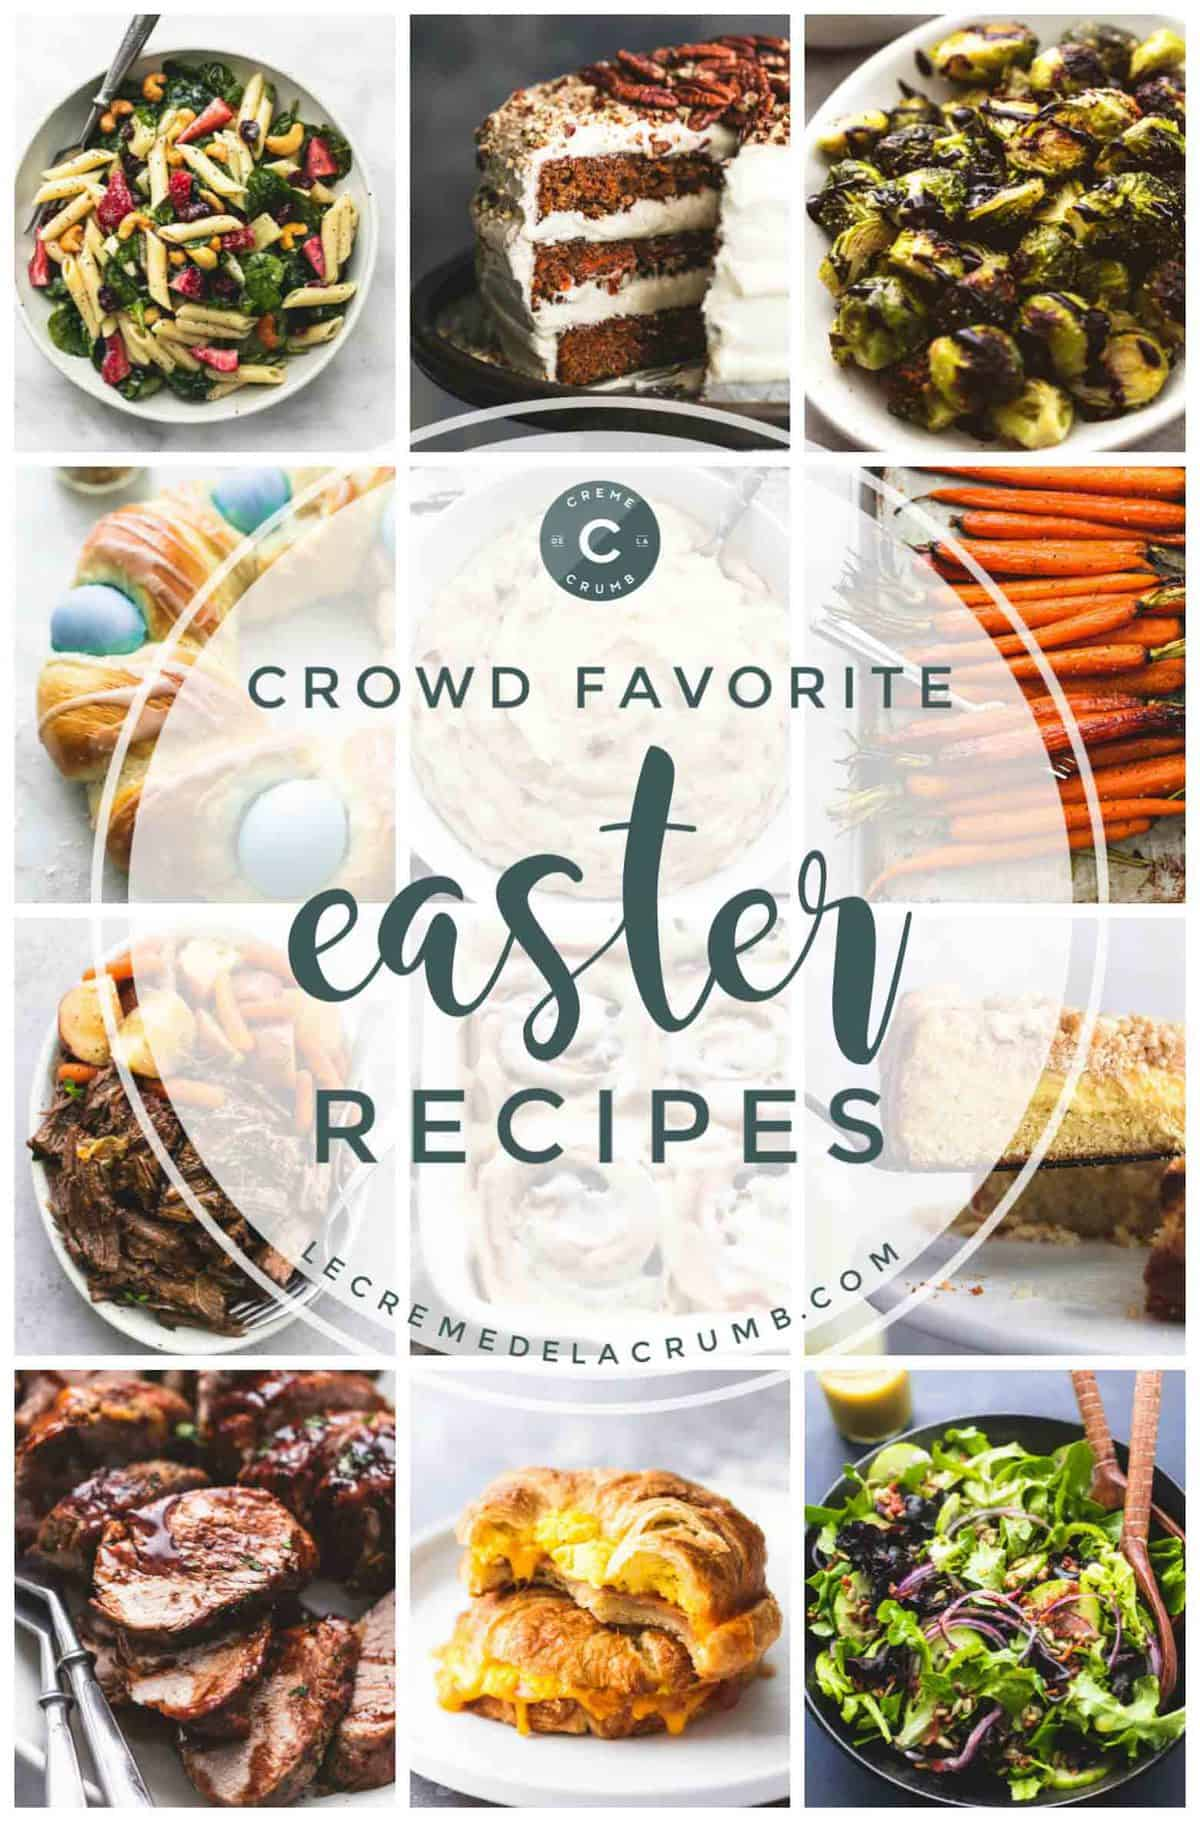 Easy Crowd Favorite Easter Brunch, Dinner, Side, and Dessert Recipes | lecremedealcrumb.com